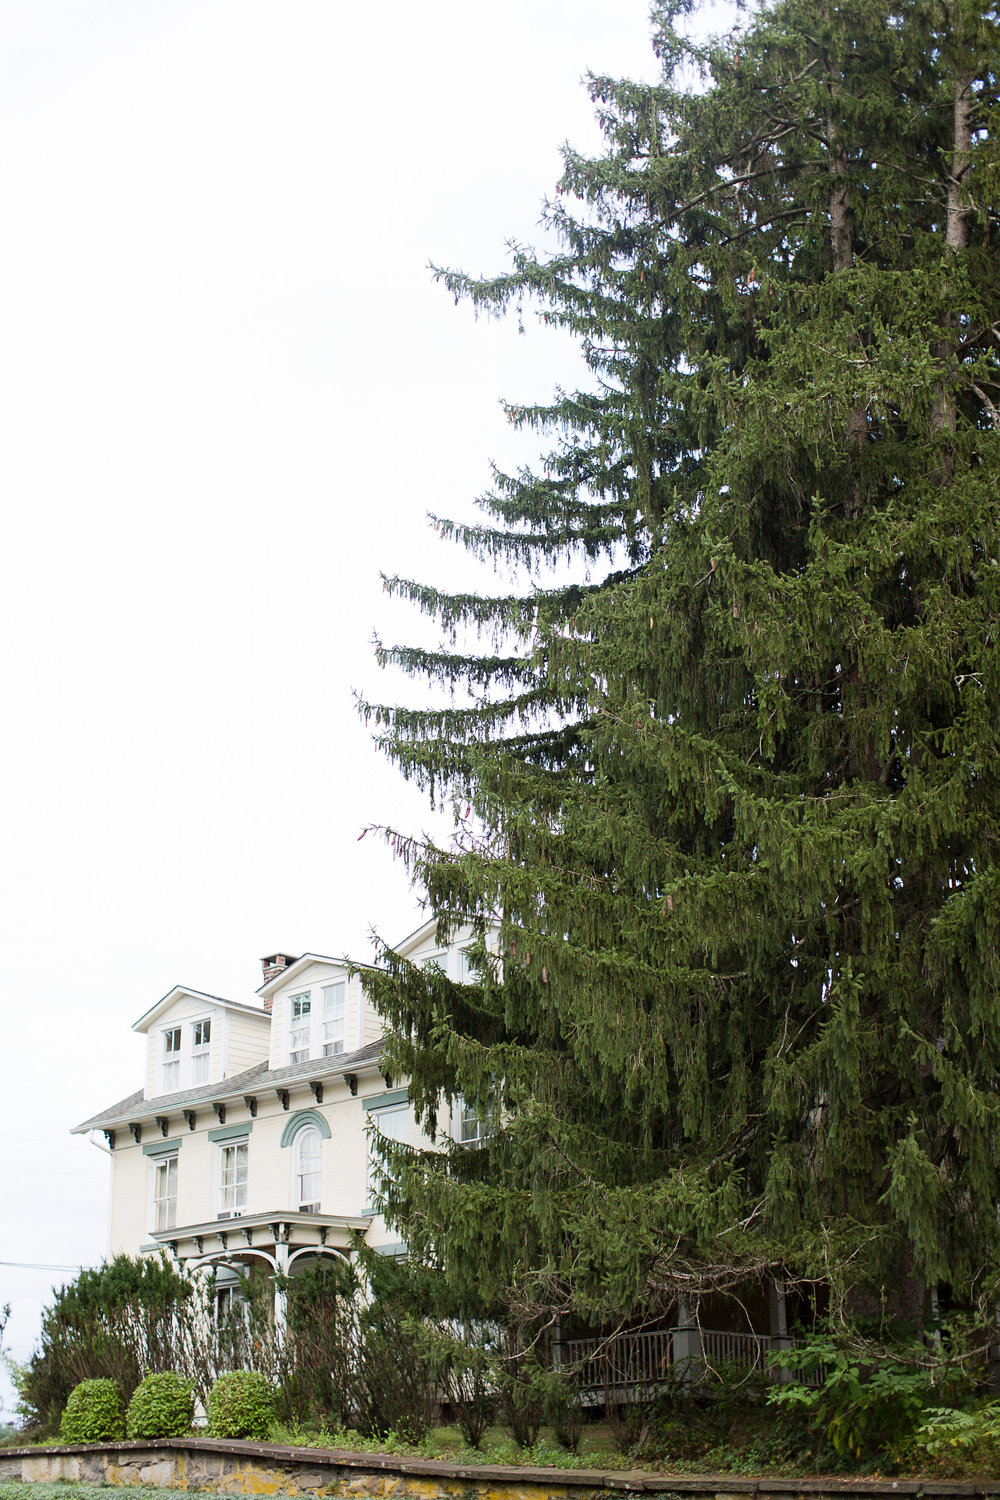 EVERGREEN TOWERING OVER SHEELEY HOUSE